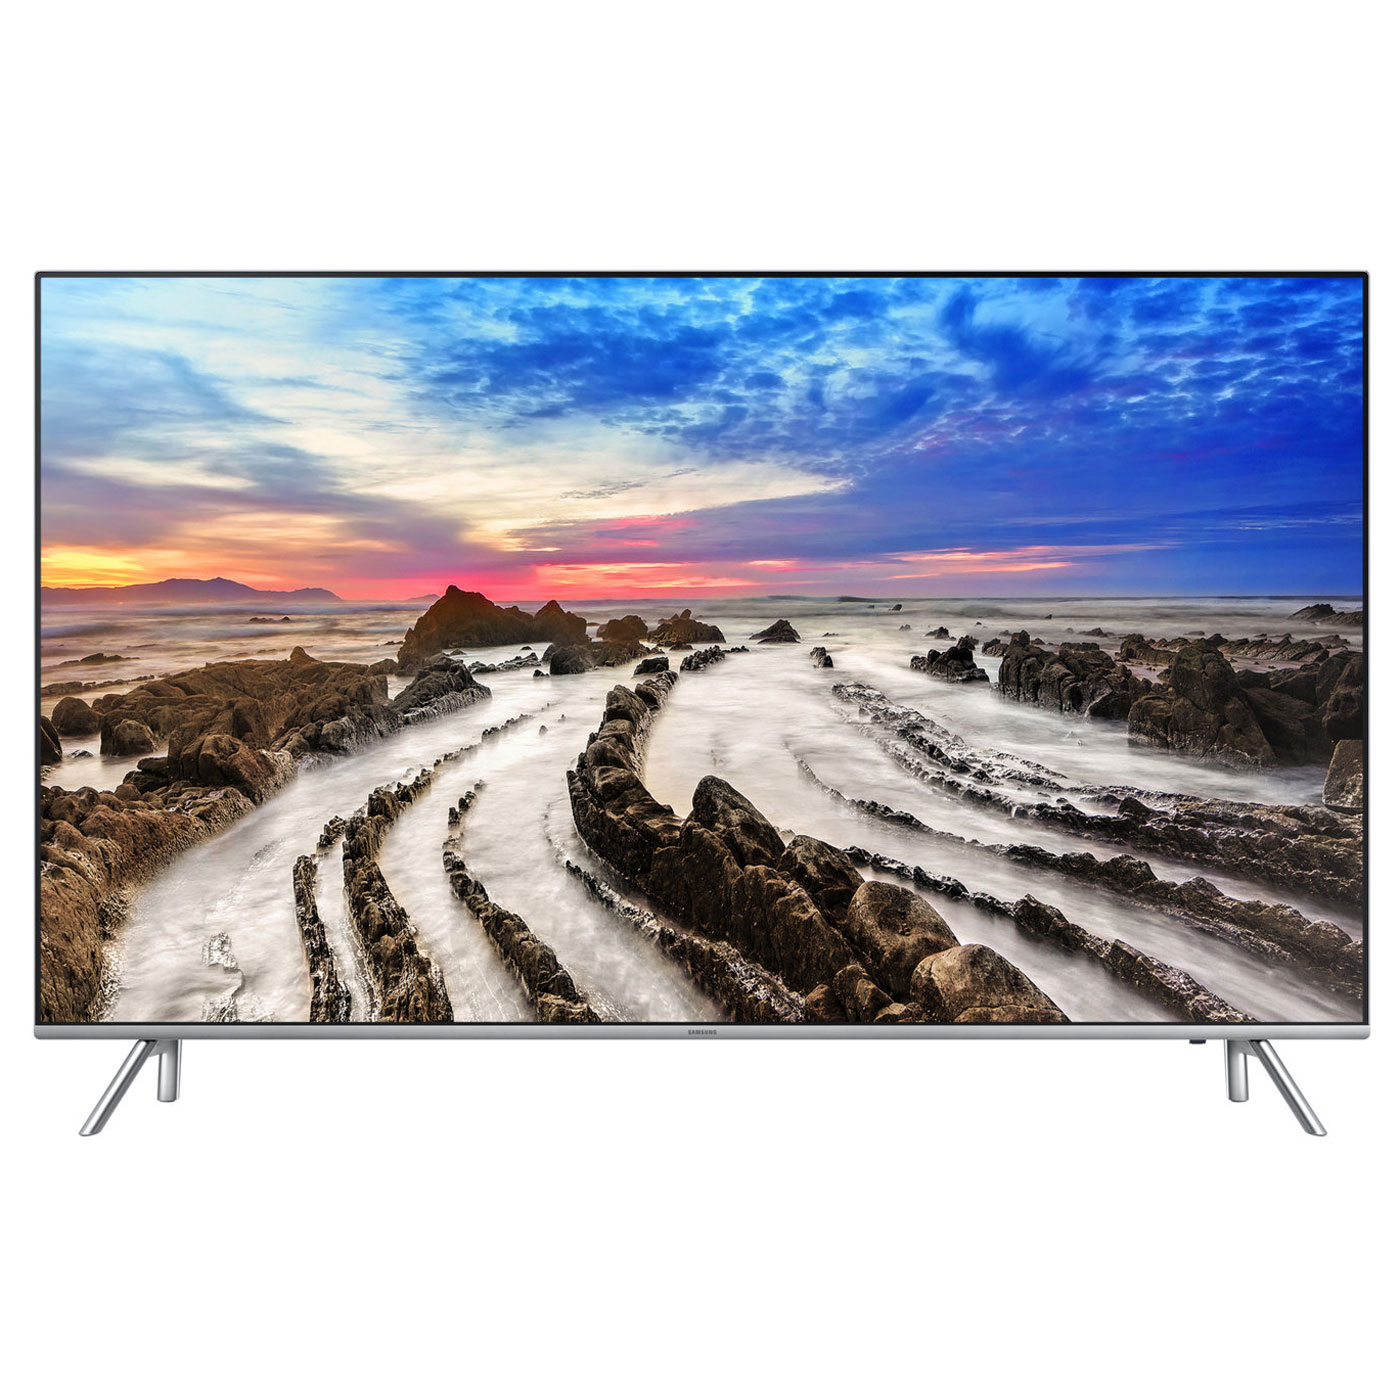 "TV Samsung UE65MU7005 Téléviseur LED 4K 65"" (165 cm) 16/9 - 3840 x 2160 pixels - Ultra HD - HDR - Wi-Fi - Bluetooth - 2200 PQI (dalle native 100 Hz)"